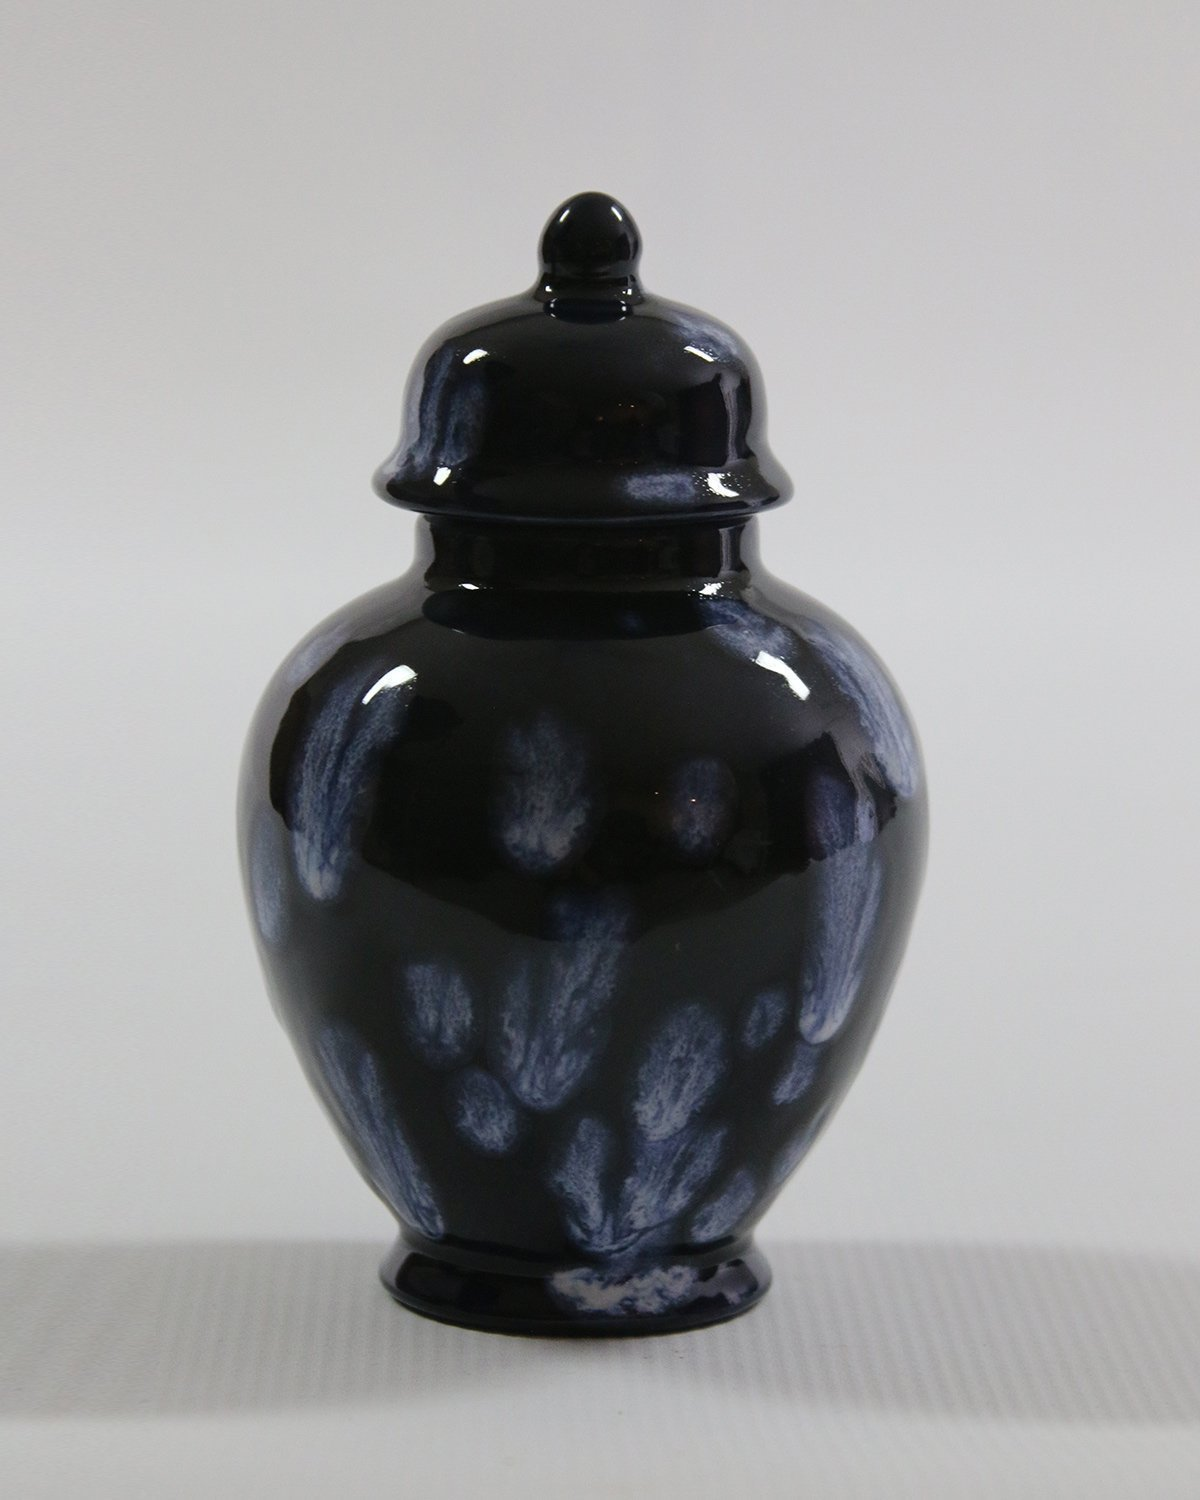 B0787QXGLR Handcrafted Ceramic Urn - Night Sky -21 cu in - Various Colors and Sizes Available, Cremation Urn for Ashes, Pet Urn 713PC2BZklPL._SL1500_